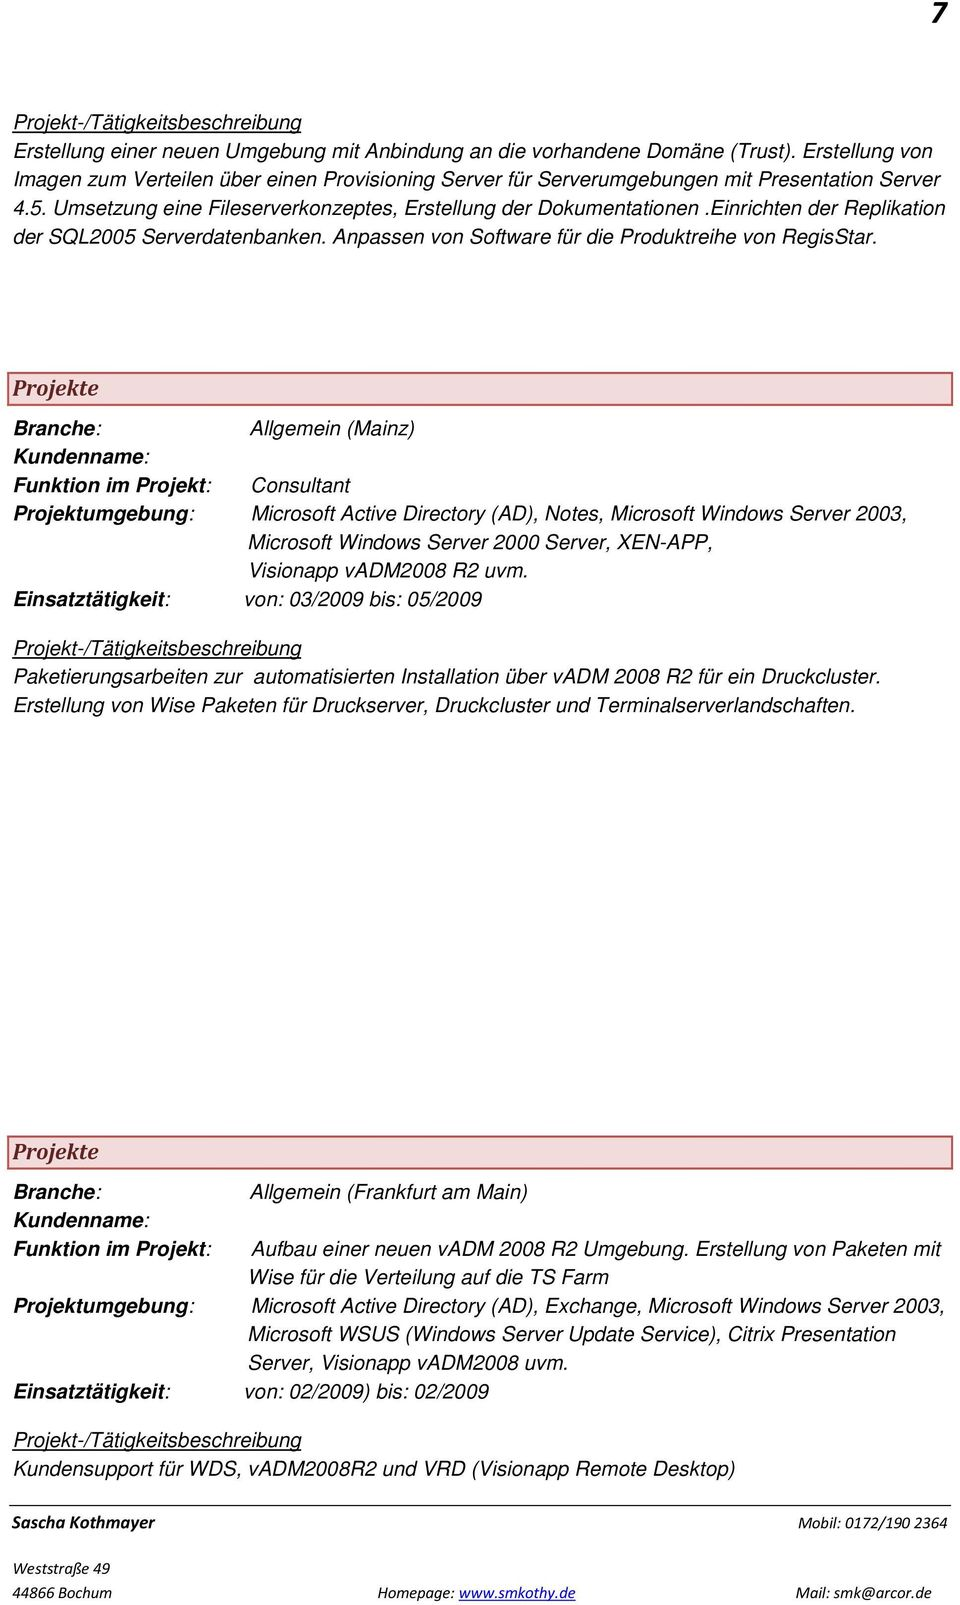 Allgemein (Mainz) Funktion im Projekt: Consultant Projektumgebung: Microsoft Active Directory (AD), Notes, Microsoft Windows Server 2003, Microsoft Windows Server 2000 Server, XEN-APP, Visionapp